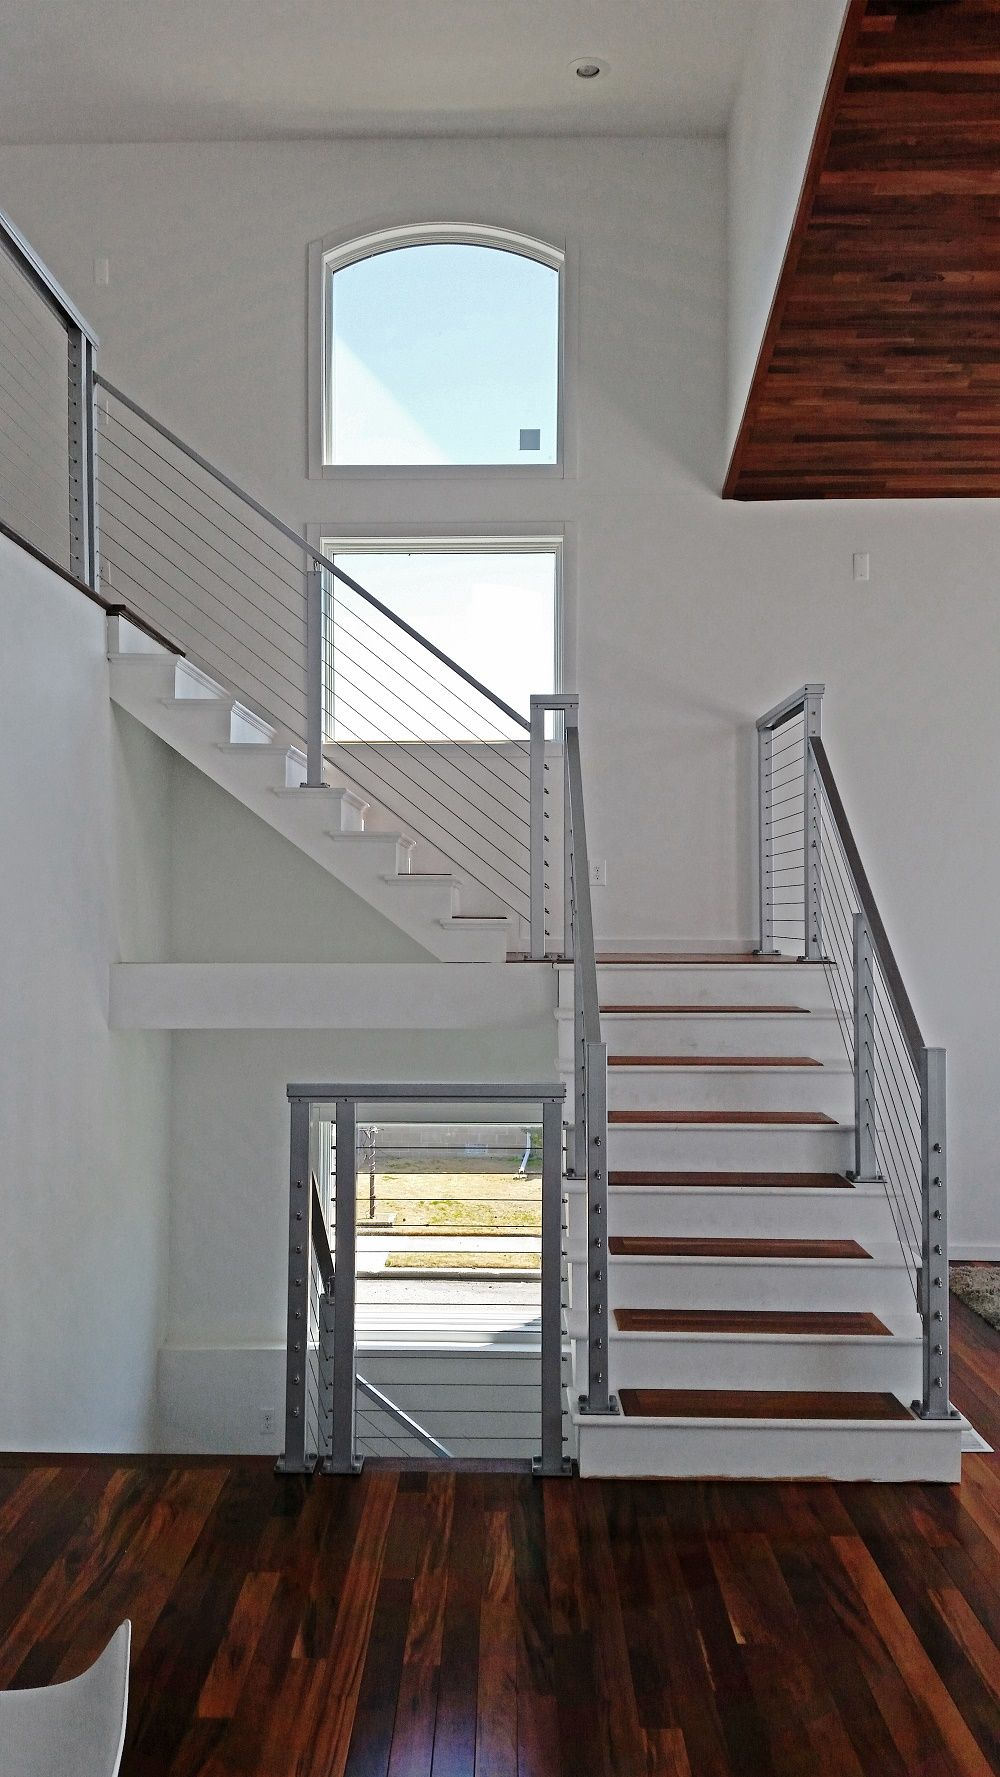 Cable stair railing square stainless steel posts and handrail with cable infill by cable railing direct